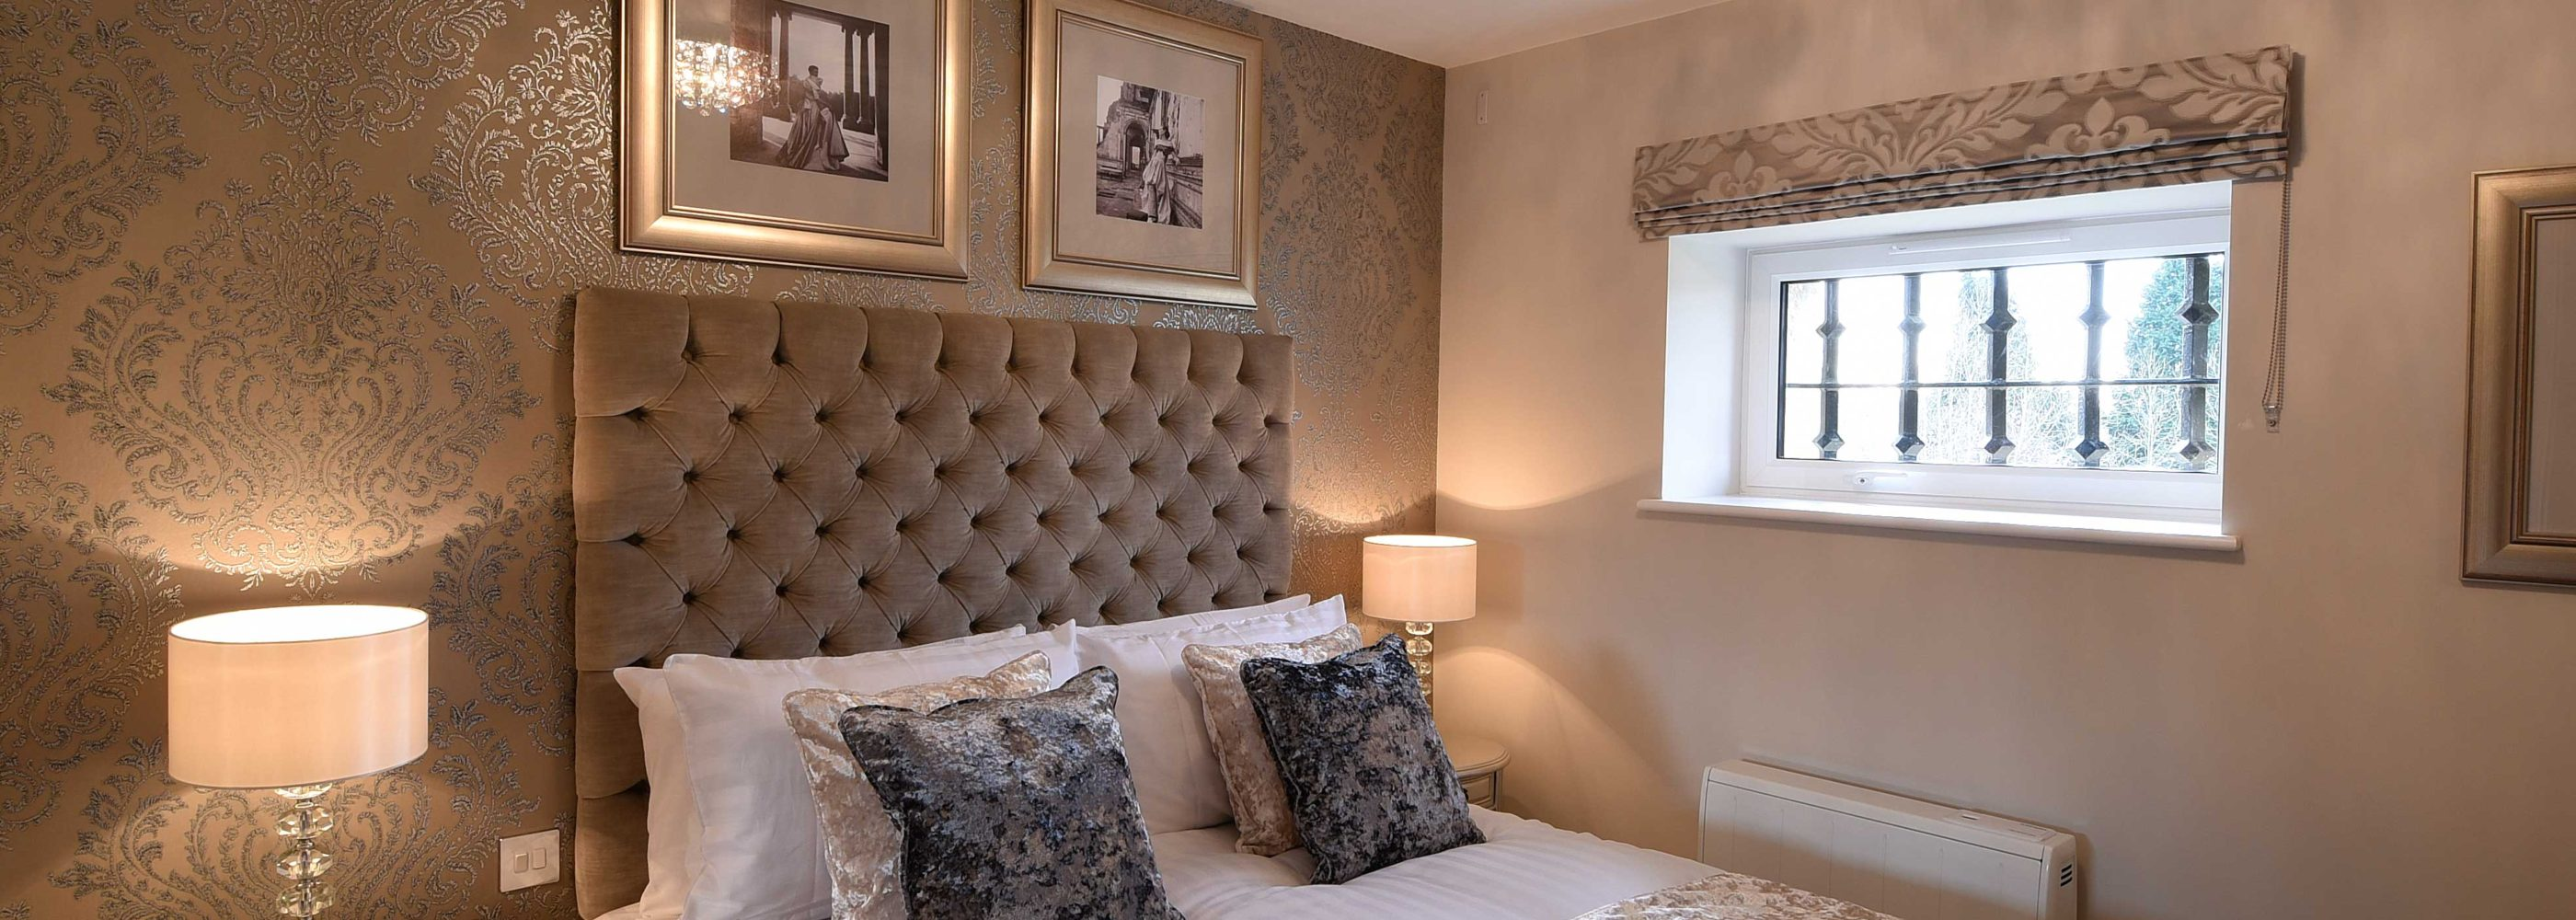 The bedroom in the Roysse Suite: a one bedroom luxury serviced apartment at The Old Gaol, by the River Thames in Abingdon, near Oxford. Ideal accommodation for corporate or holiday short lets